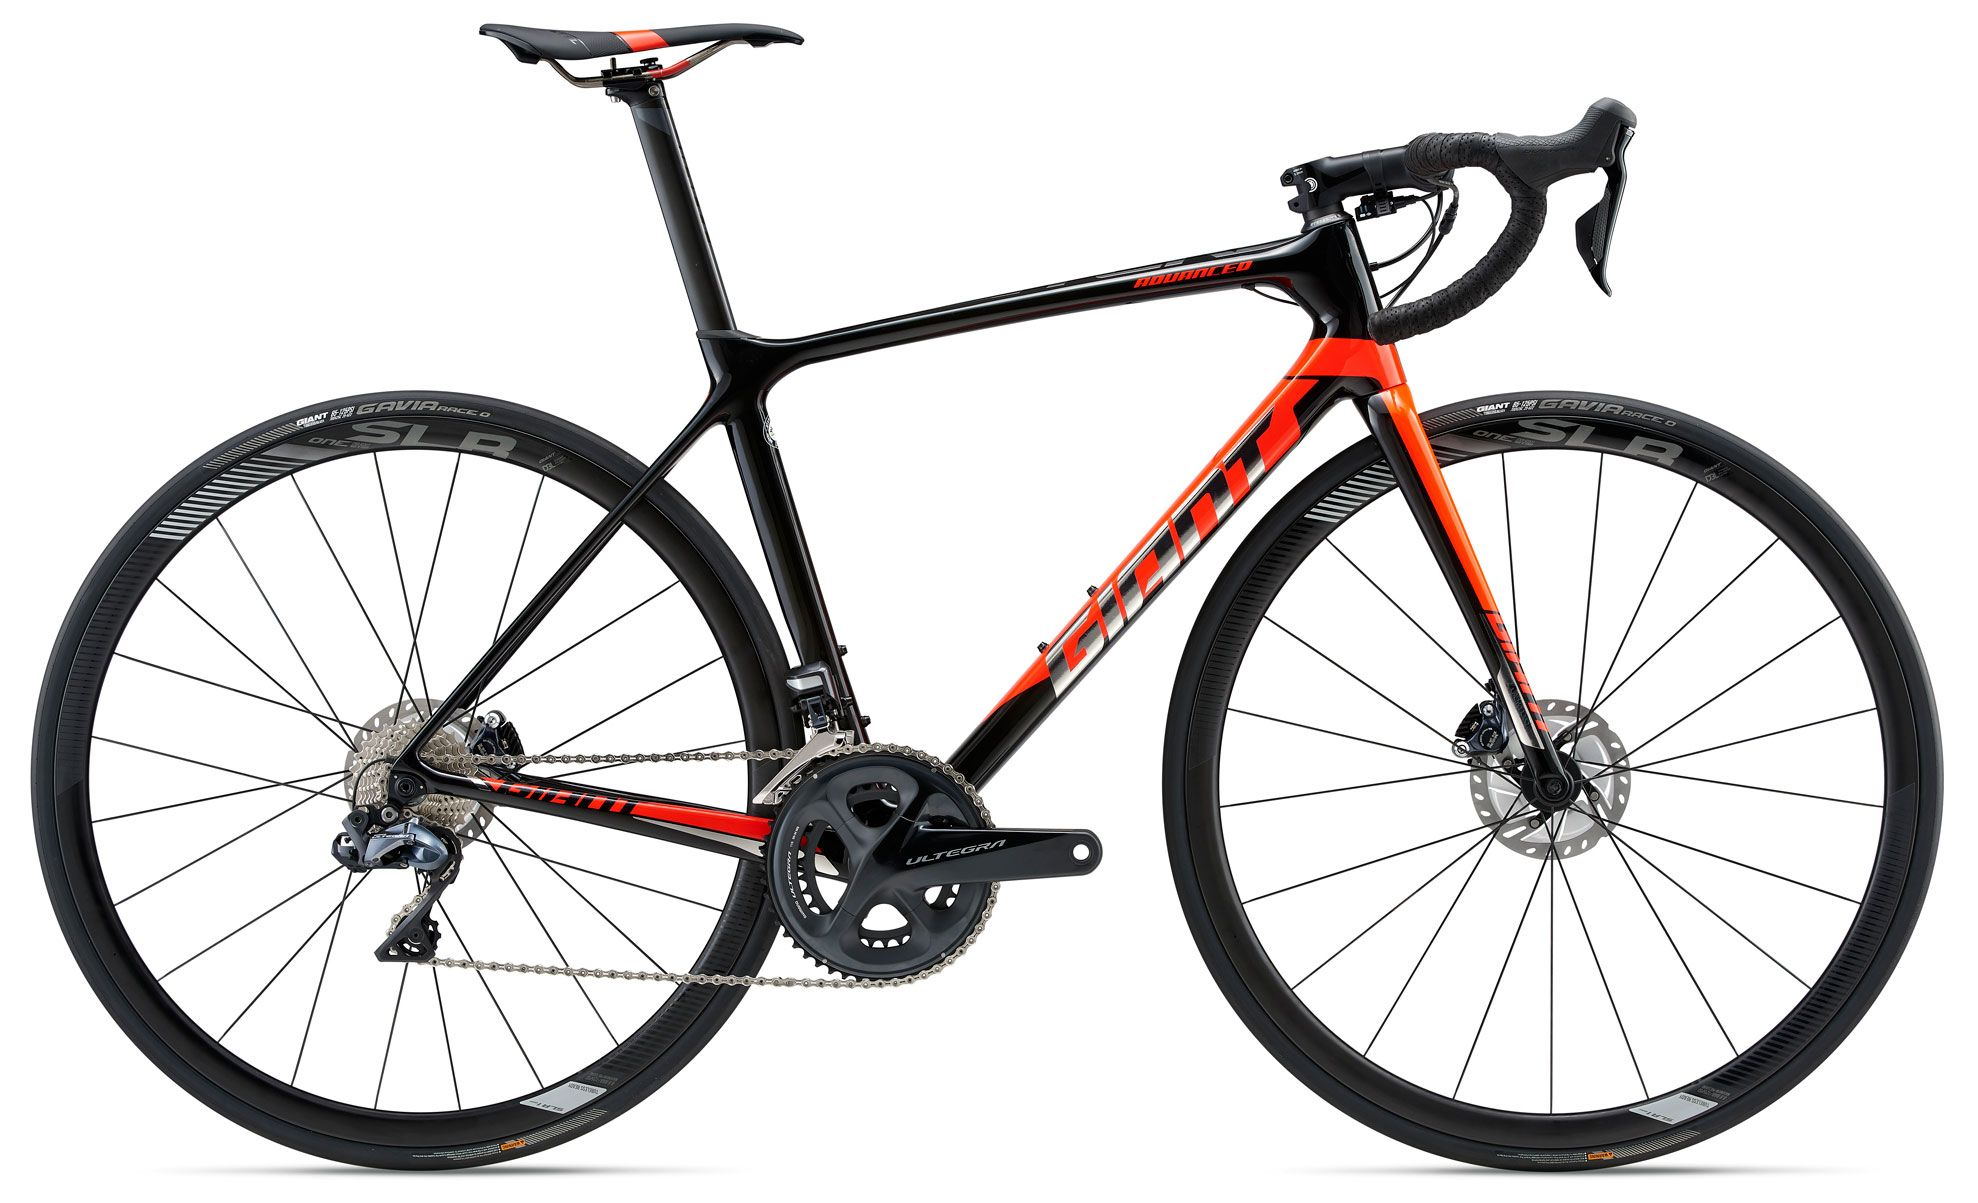 Велосипед Giant TCR Advanced Pro 0 Disc 2018 велосипед giant trinity composite 2 w 2014 page 5